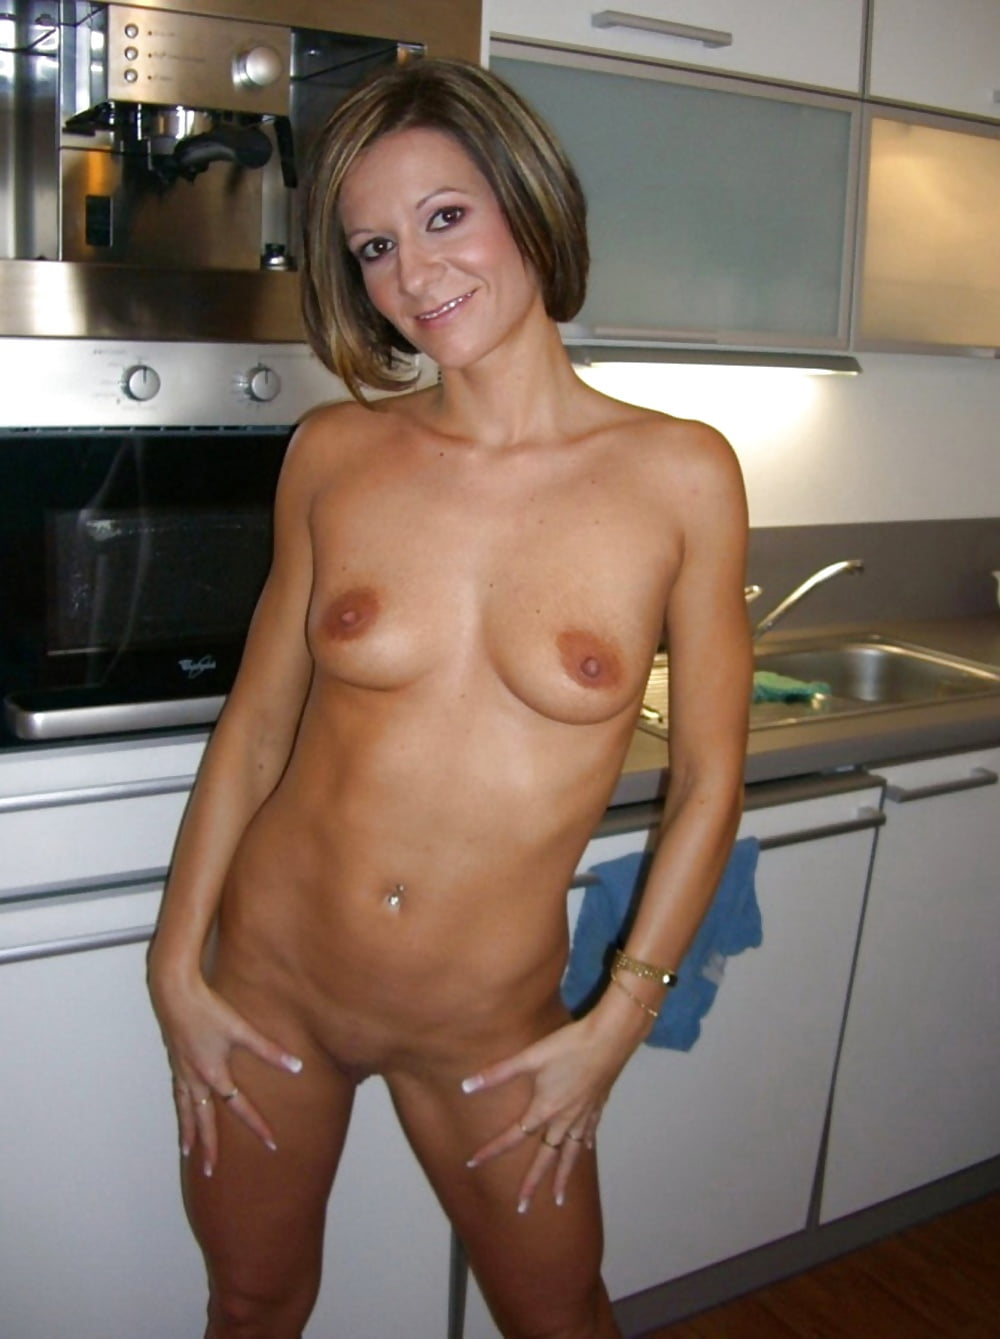 Cute young milf — 1